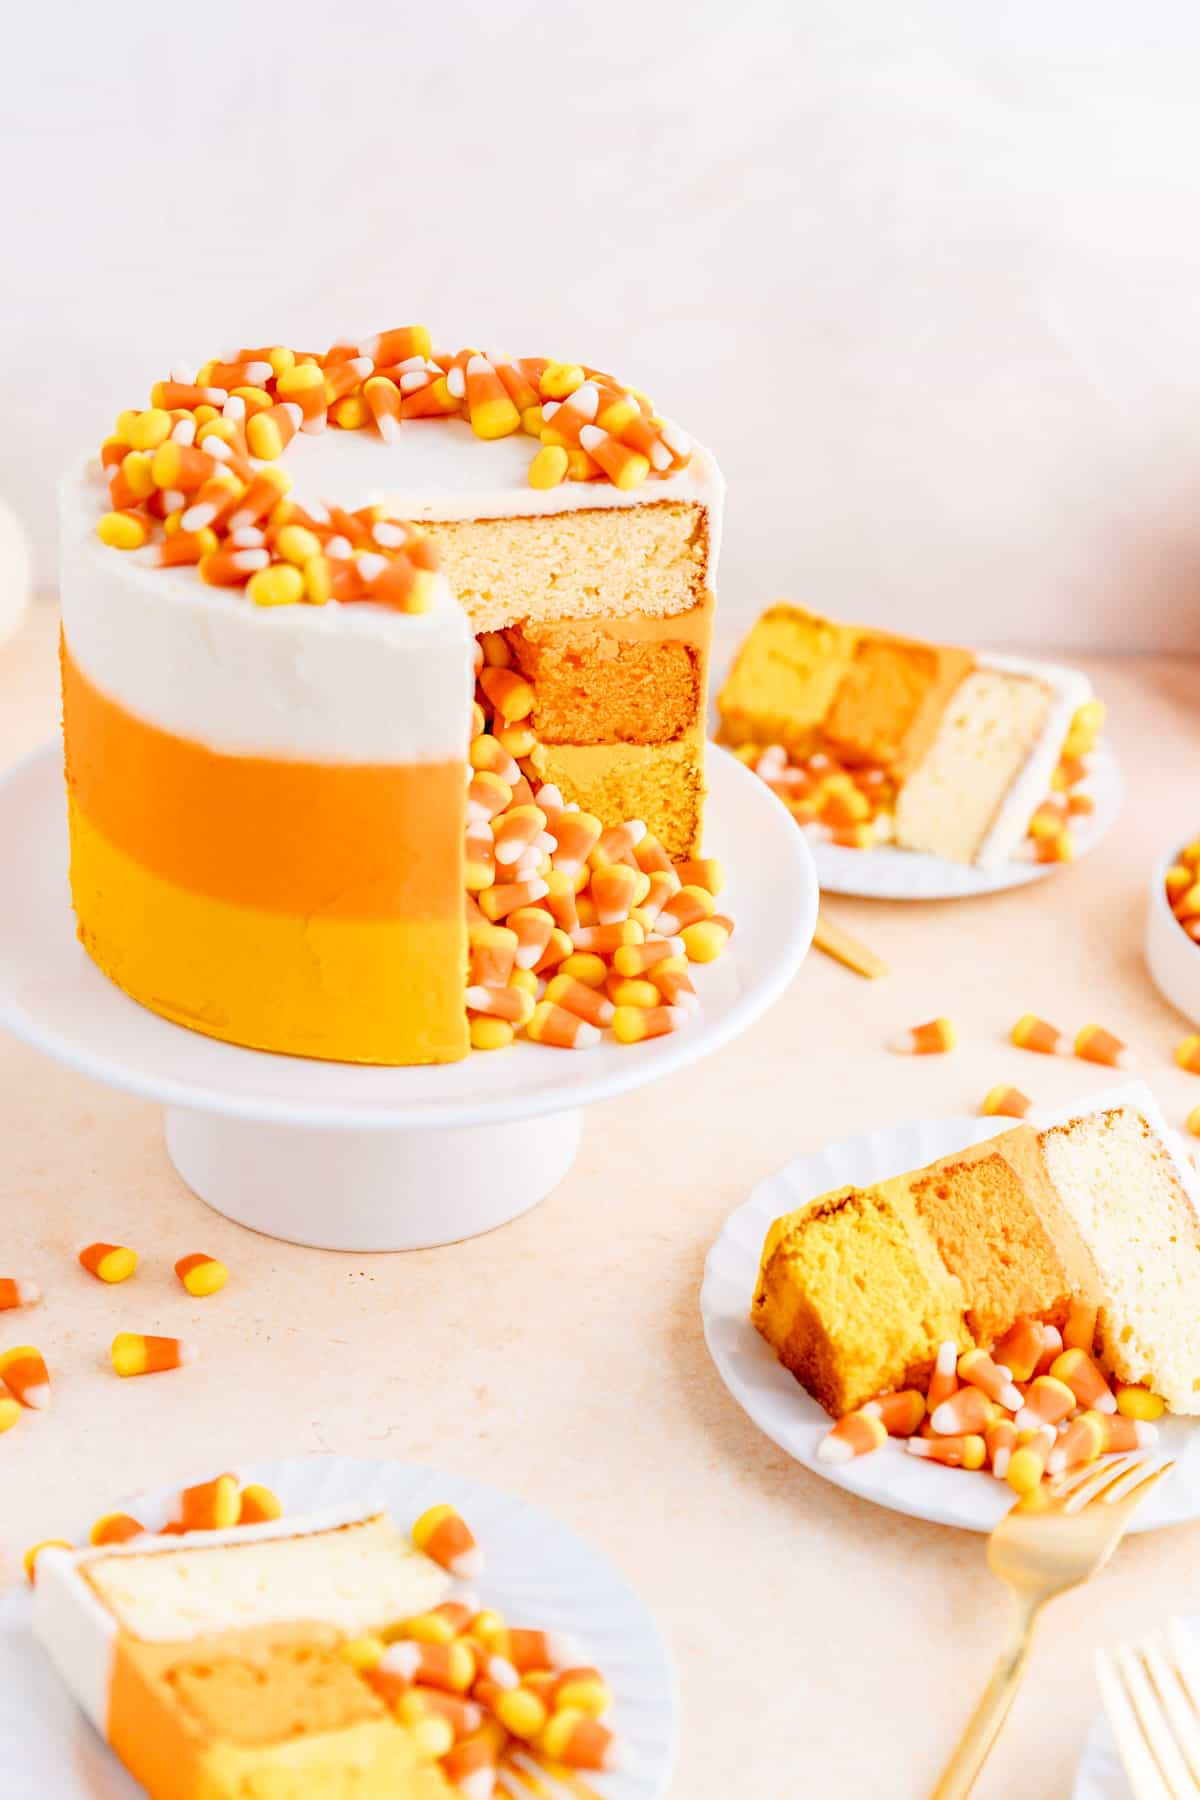 candy corn decorated cake with candy corn spilling out of middle with slices on plates